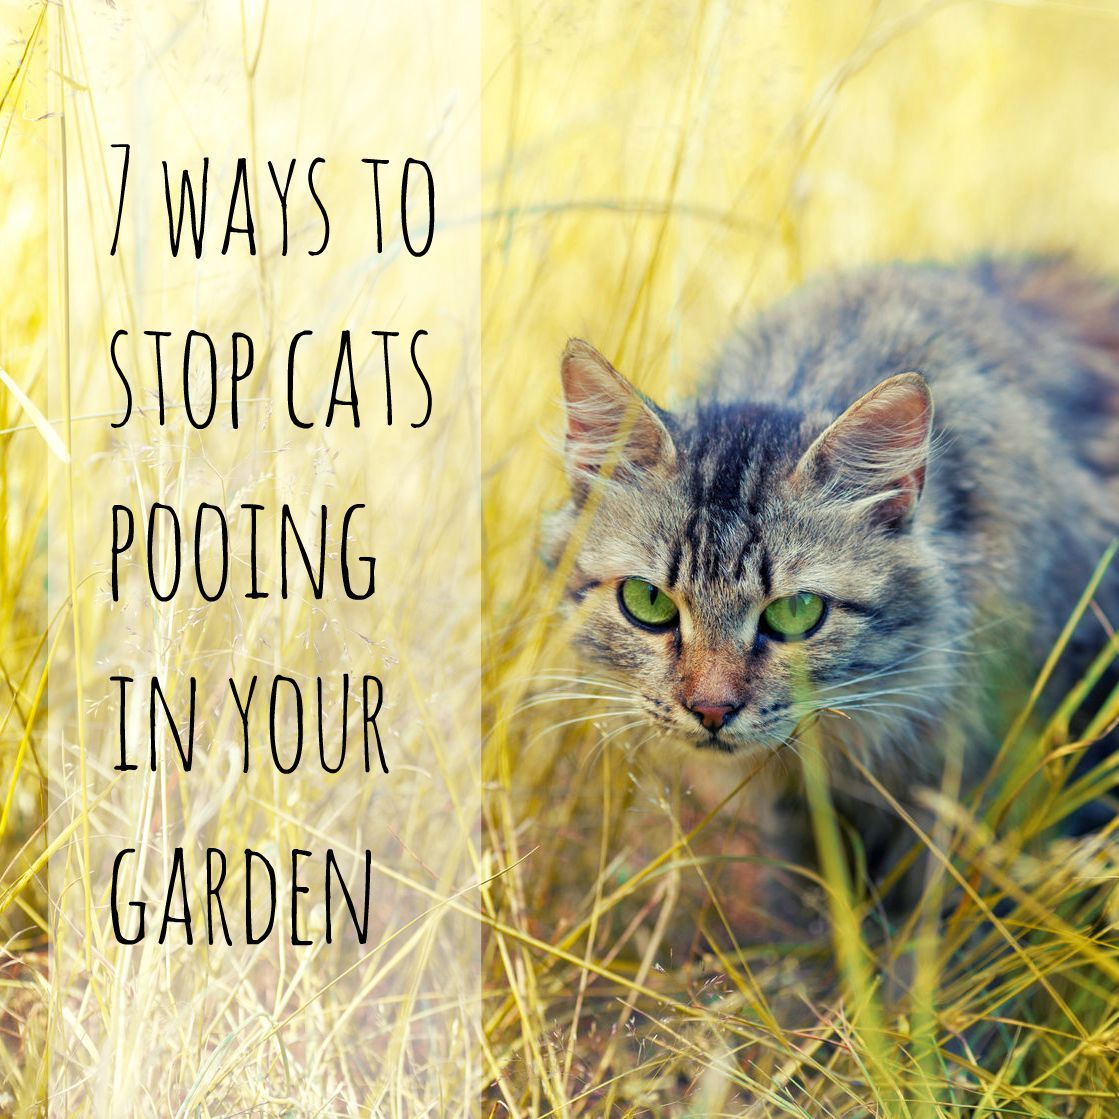 7 Ways To Stop Cats Pooing In Your Garden Tips For Keeping Neighbours Cats Out Your Garden Plants That Repel Cats Cat Repellant Garden Cat Repellant Outdoor